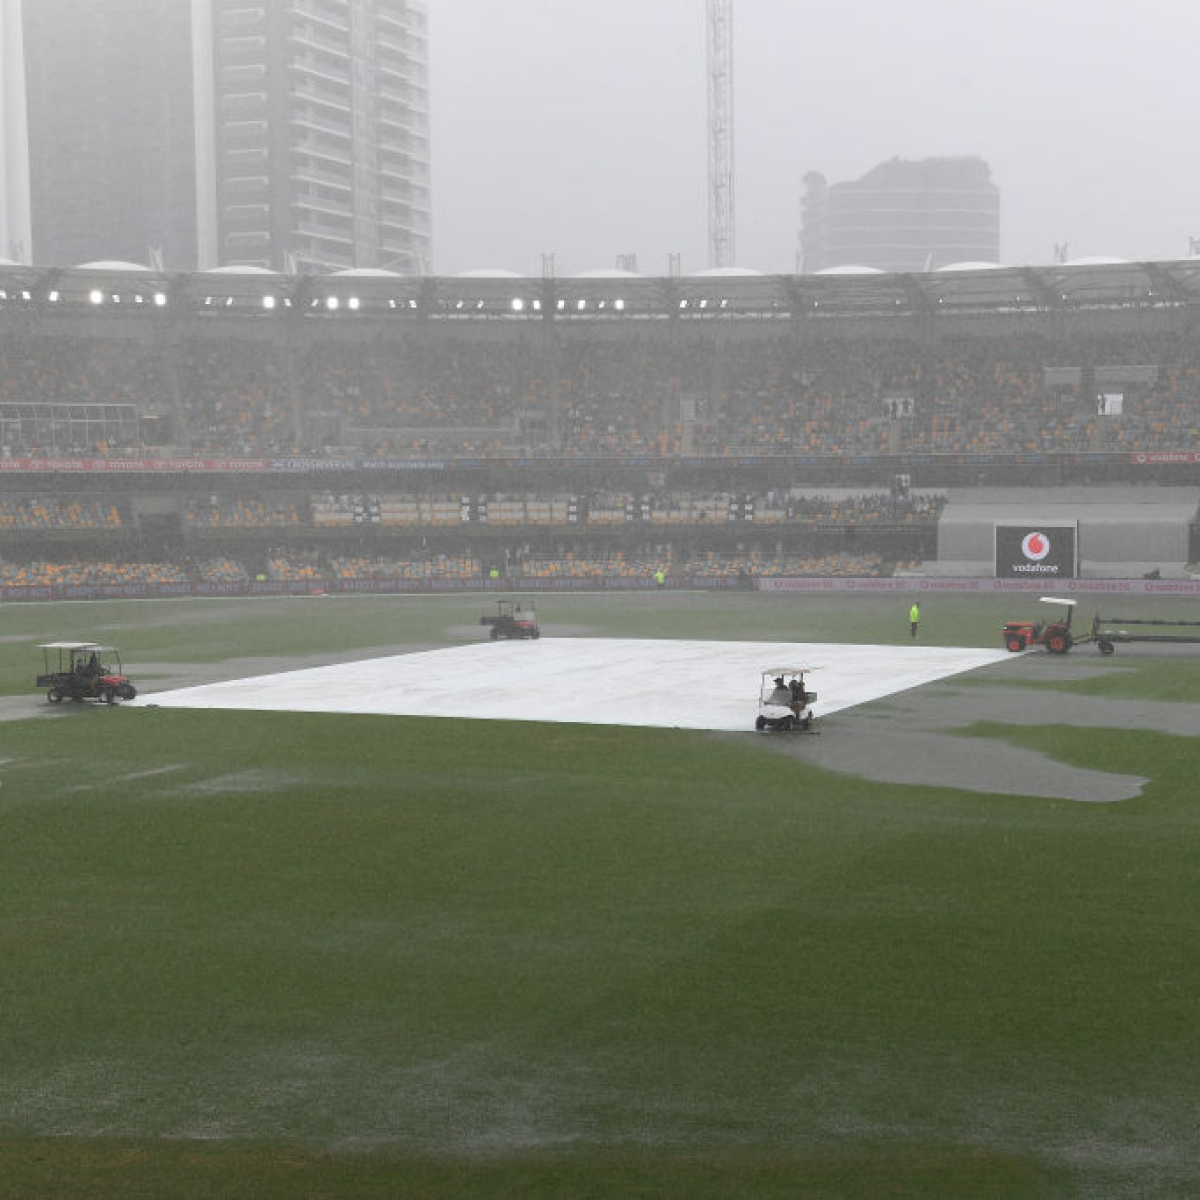 Ind vs Aus, 4th Test: Rain washes out final session as Rohit Sharma's wicket gives hosts slight edge